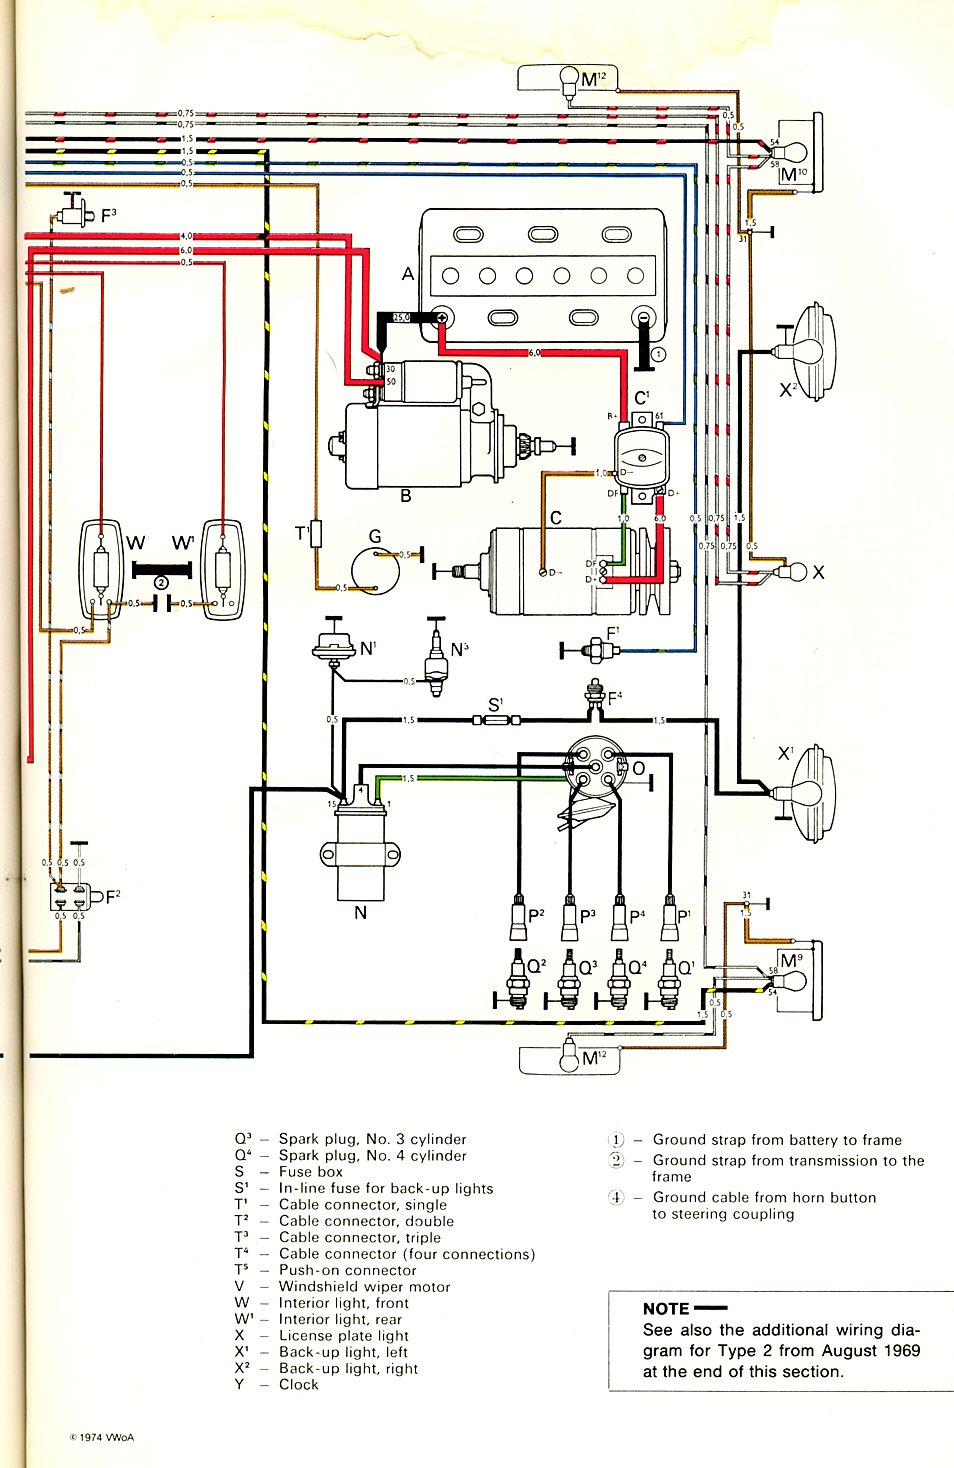 Type 2 Wiring Diagrams Furthermore Wiper Motor Diagram Together With